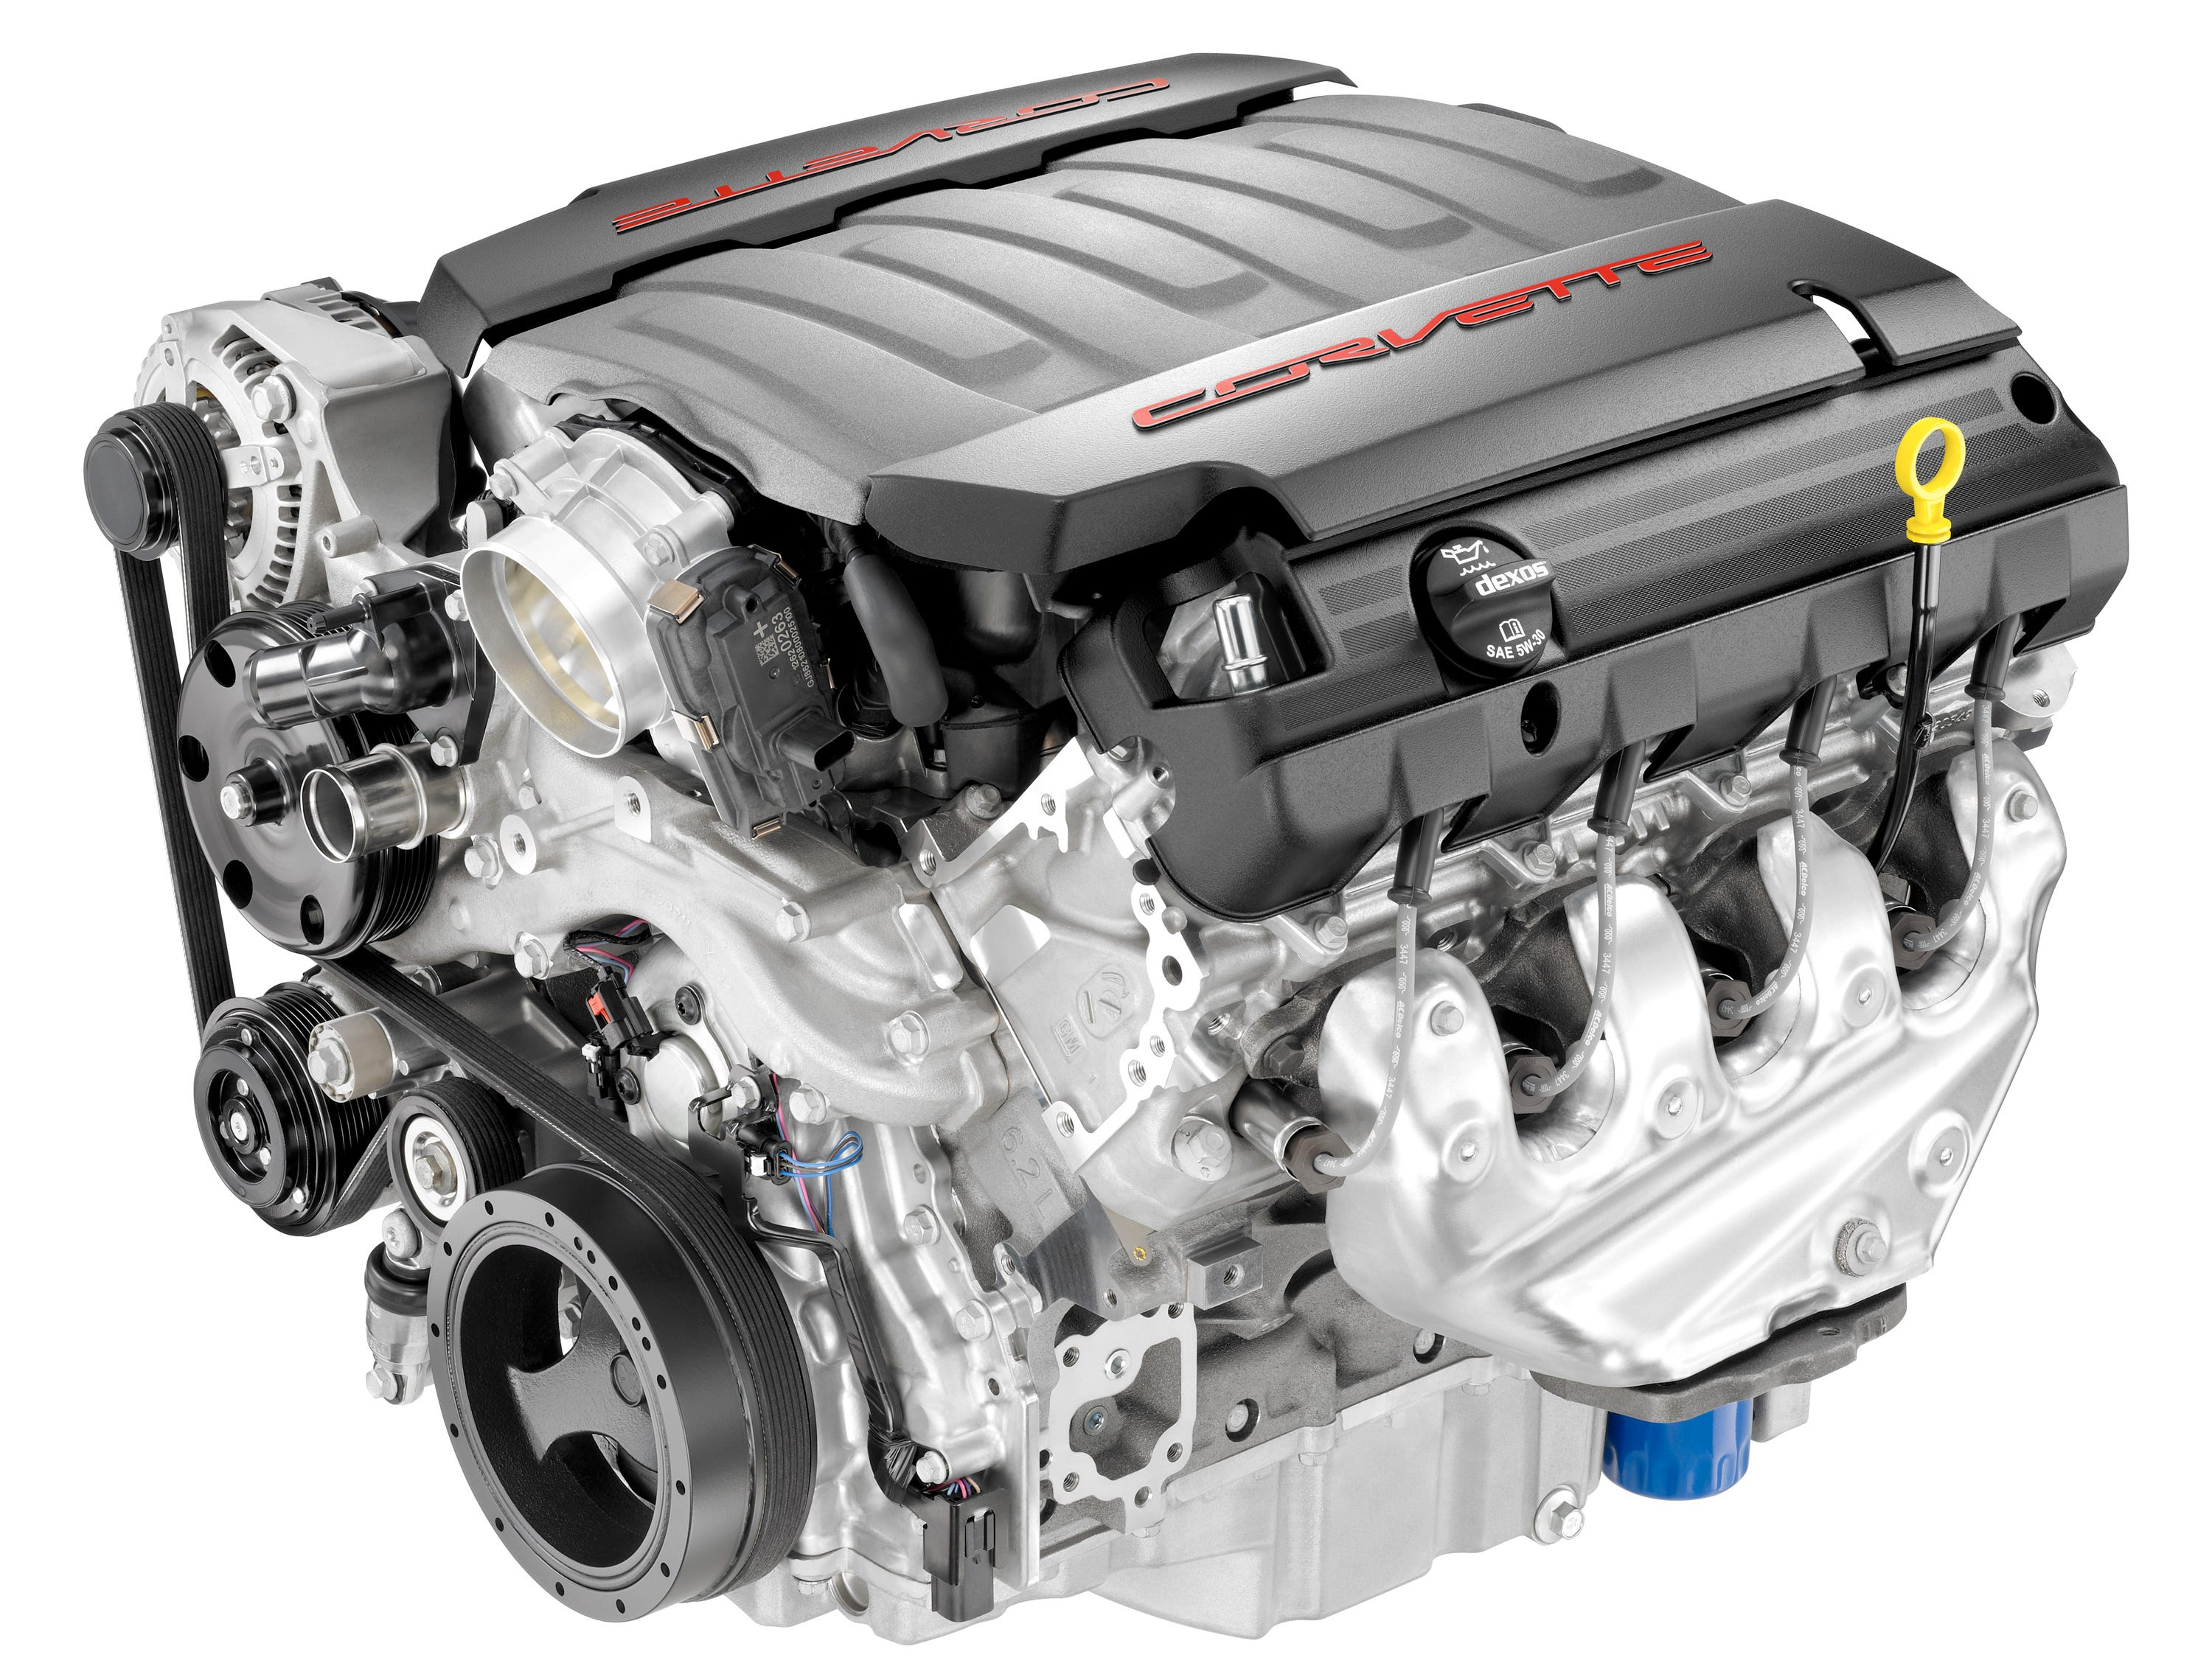 """The 2014 Corvettes """"LT-1"""" 6.2-liter V-8 -- a new version of the Chevy small-block featuring variable valve timing and direct injection."""